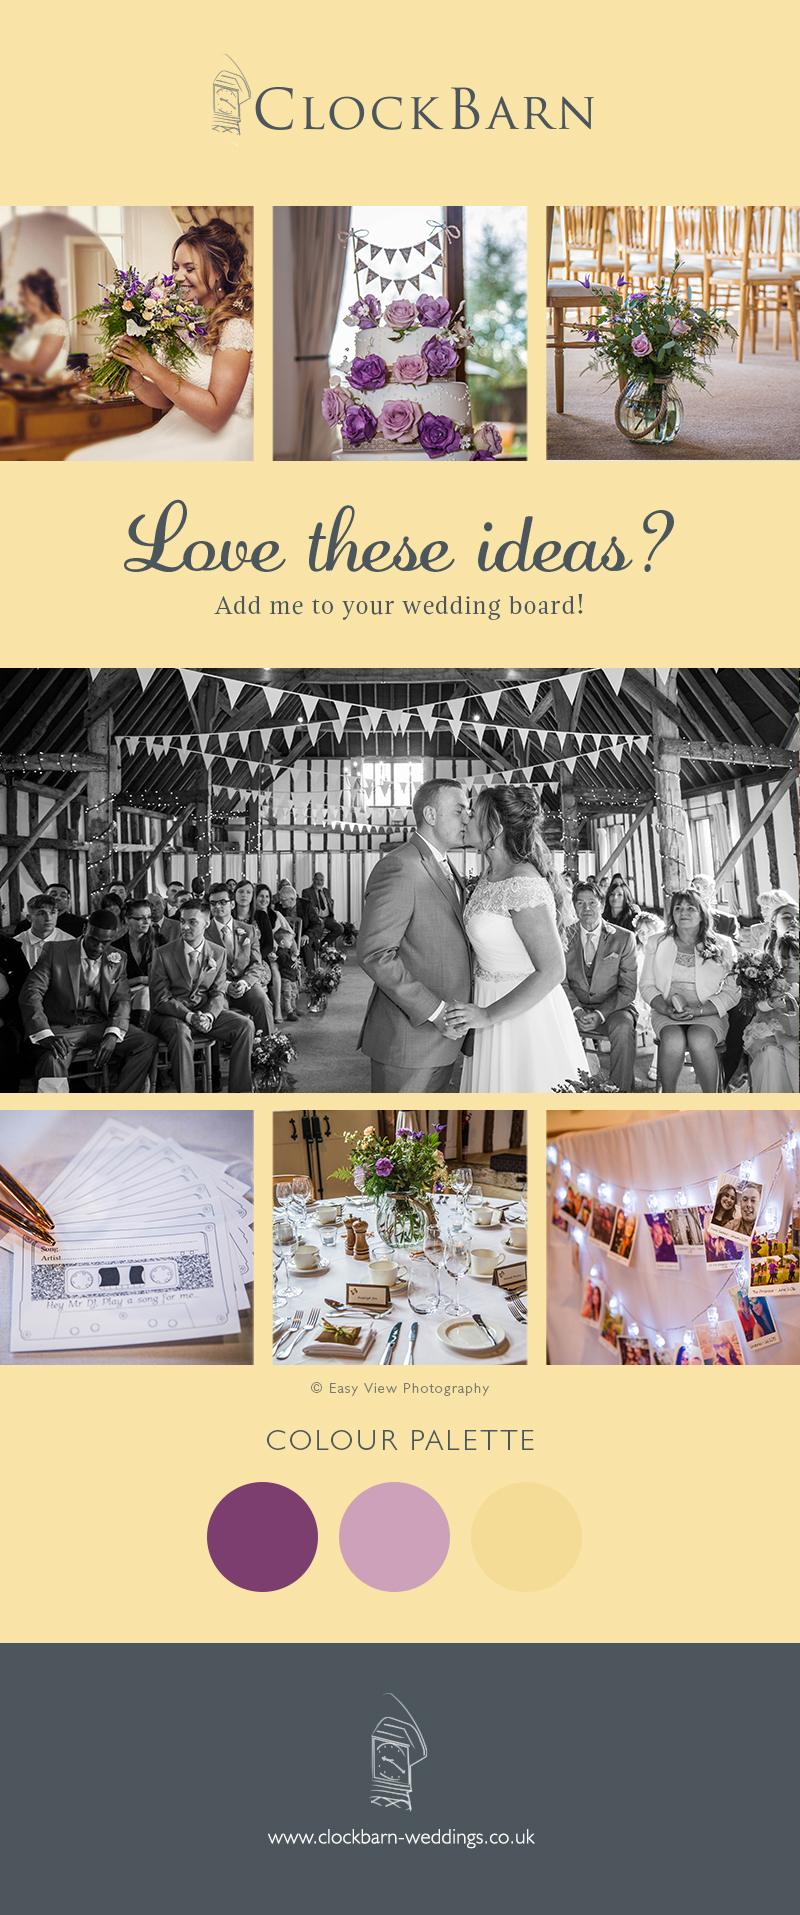 Lucy-Jane and matthew's real life wedding at Clock Barn